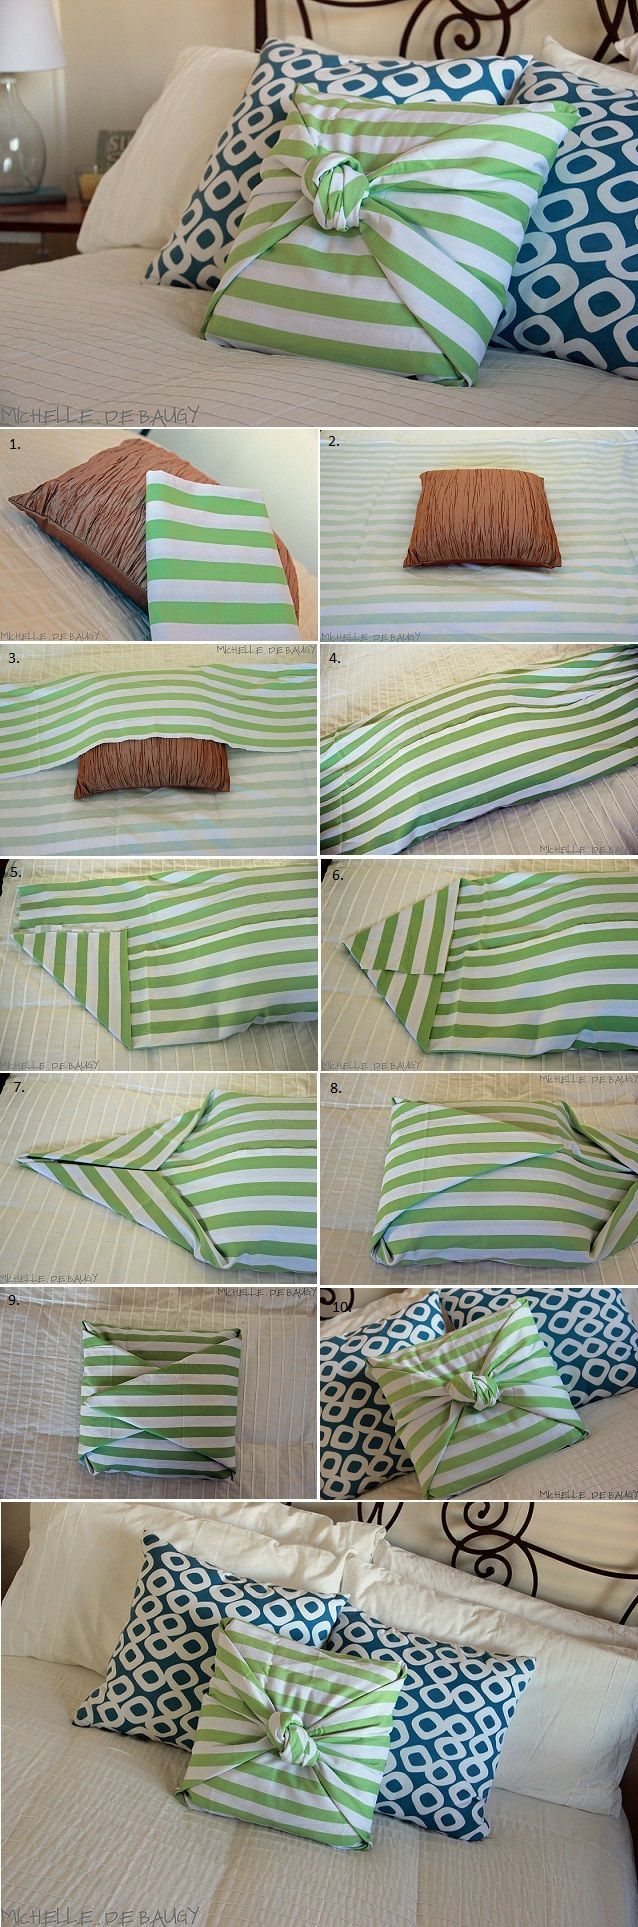 Diy Pillow Slipcover 41 - Looking For DIY Pillow Cover Ideas ?